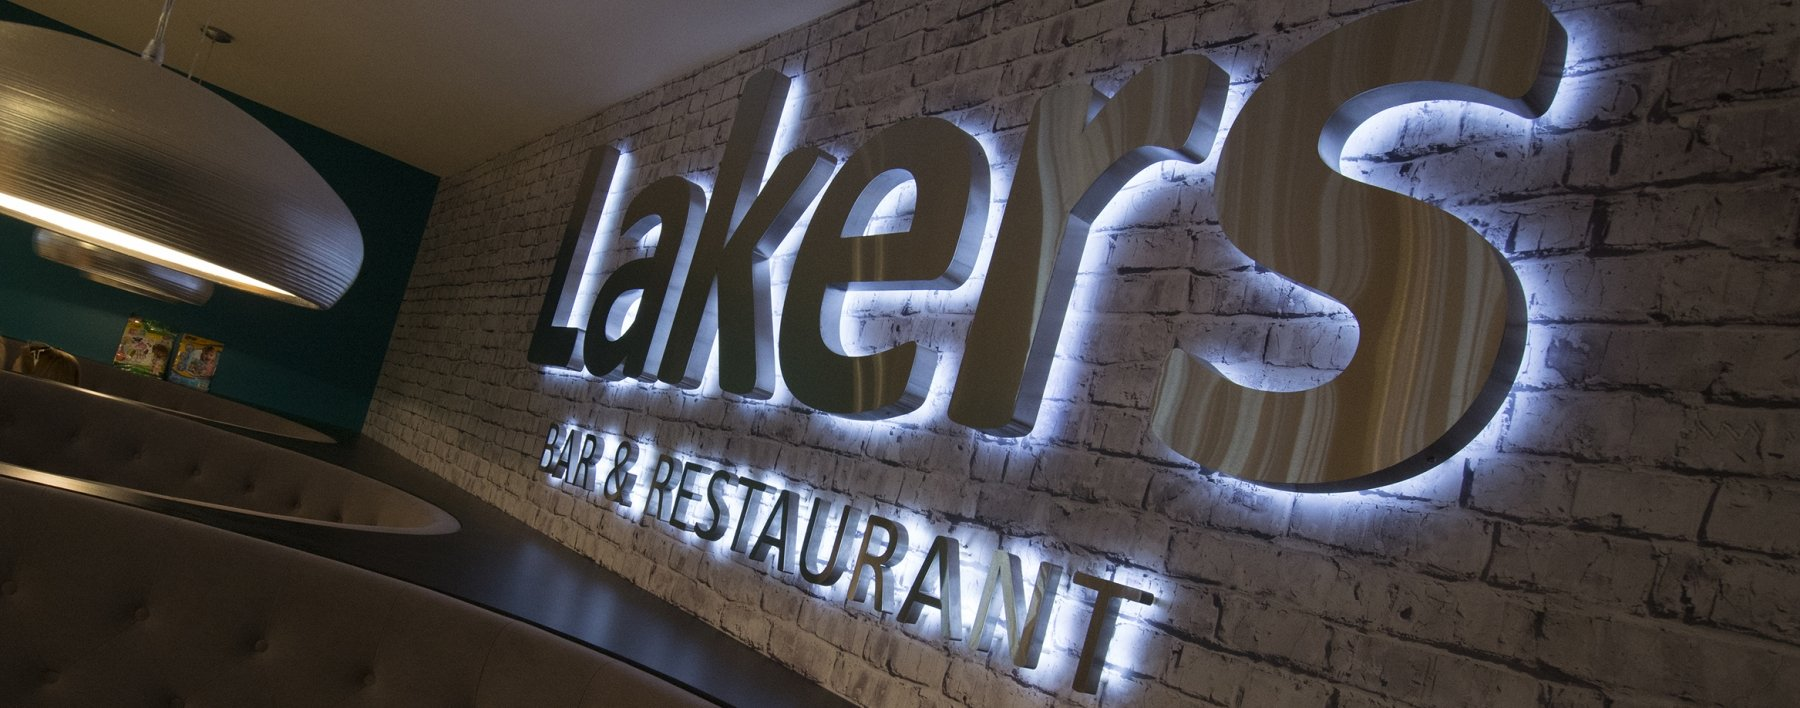 lakers bar bespoke interior wall wrap